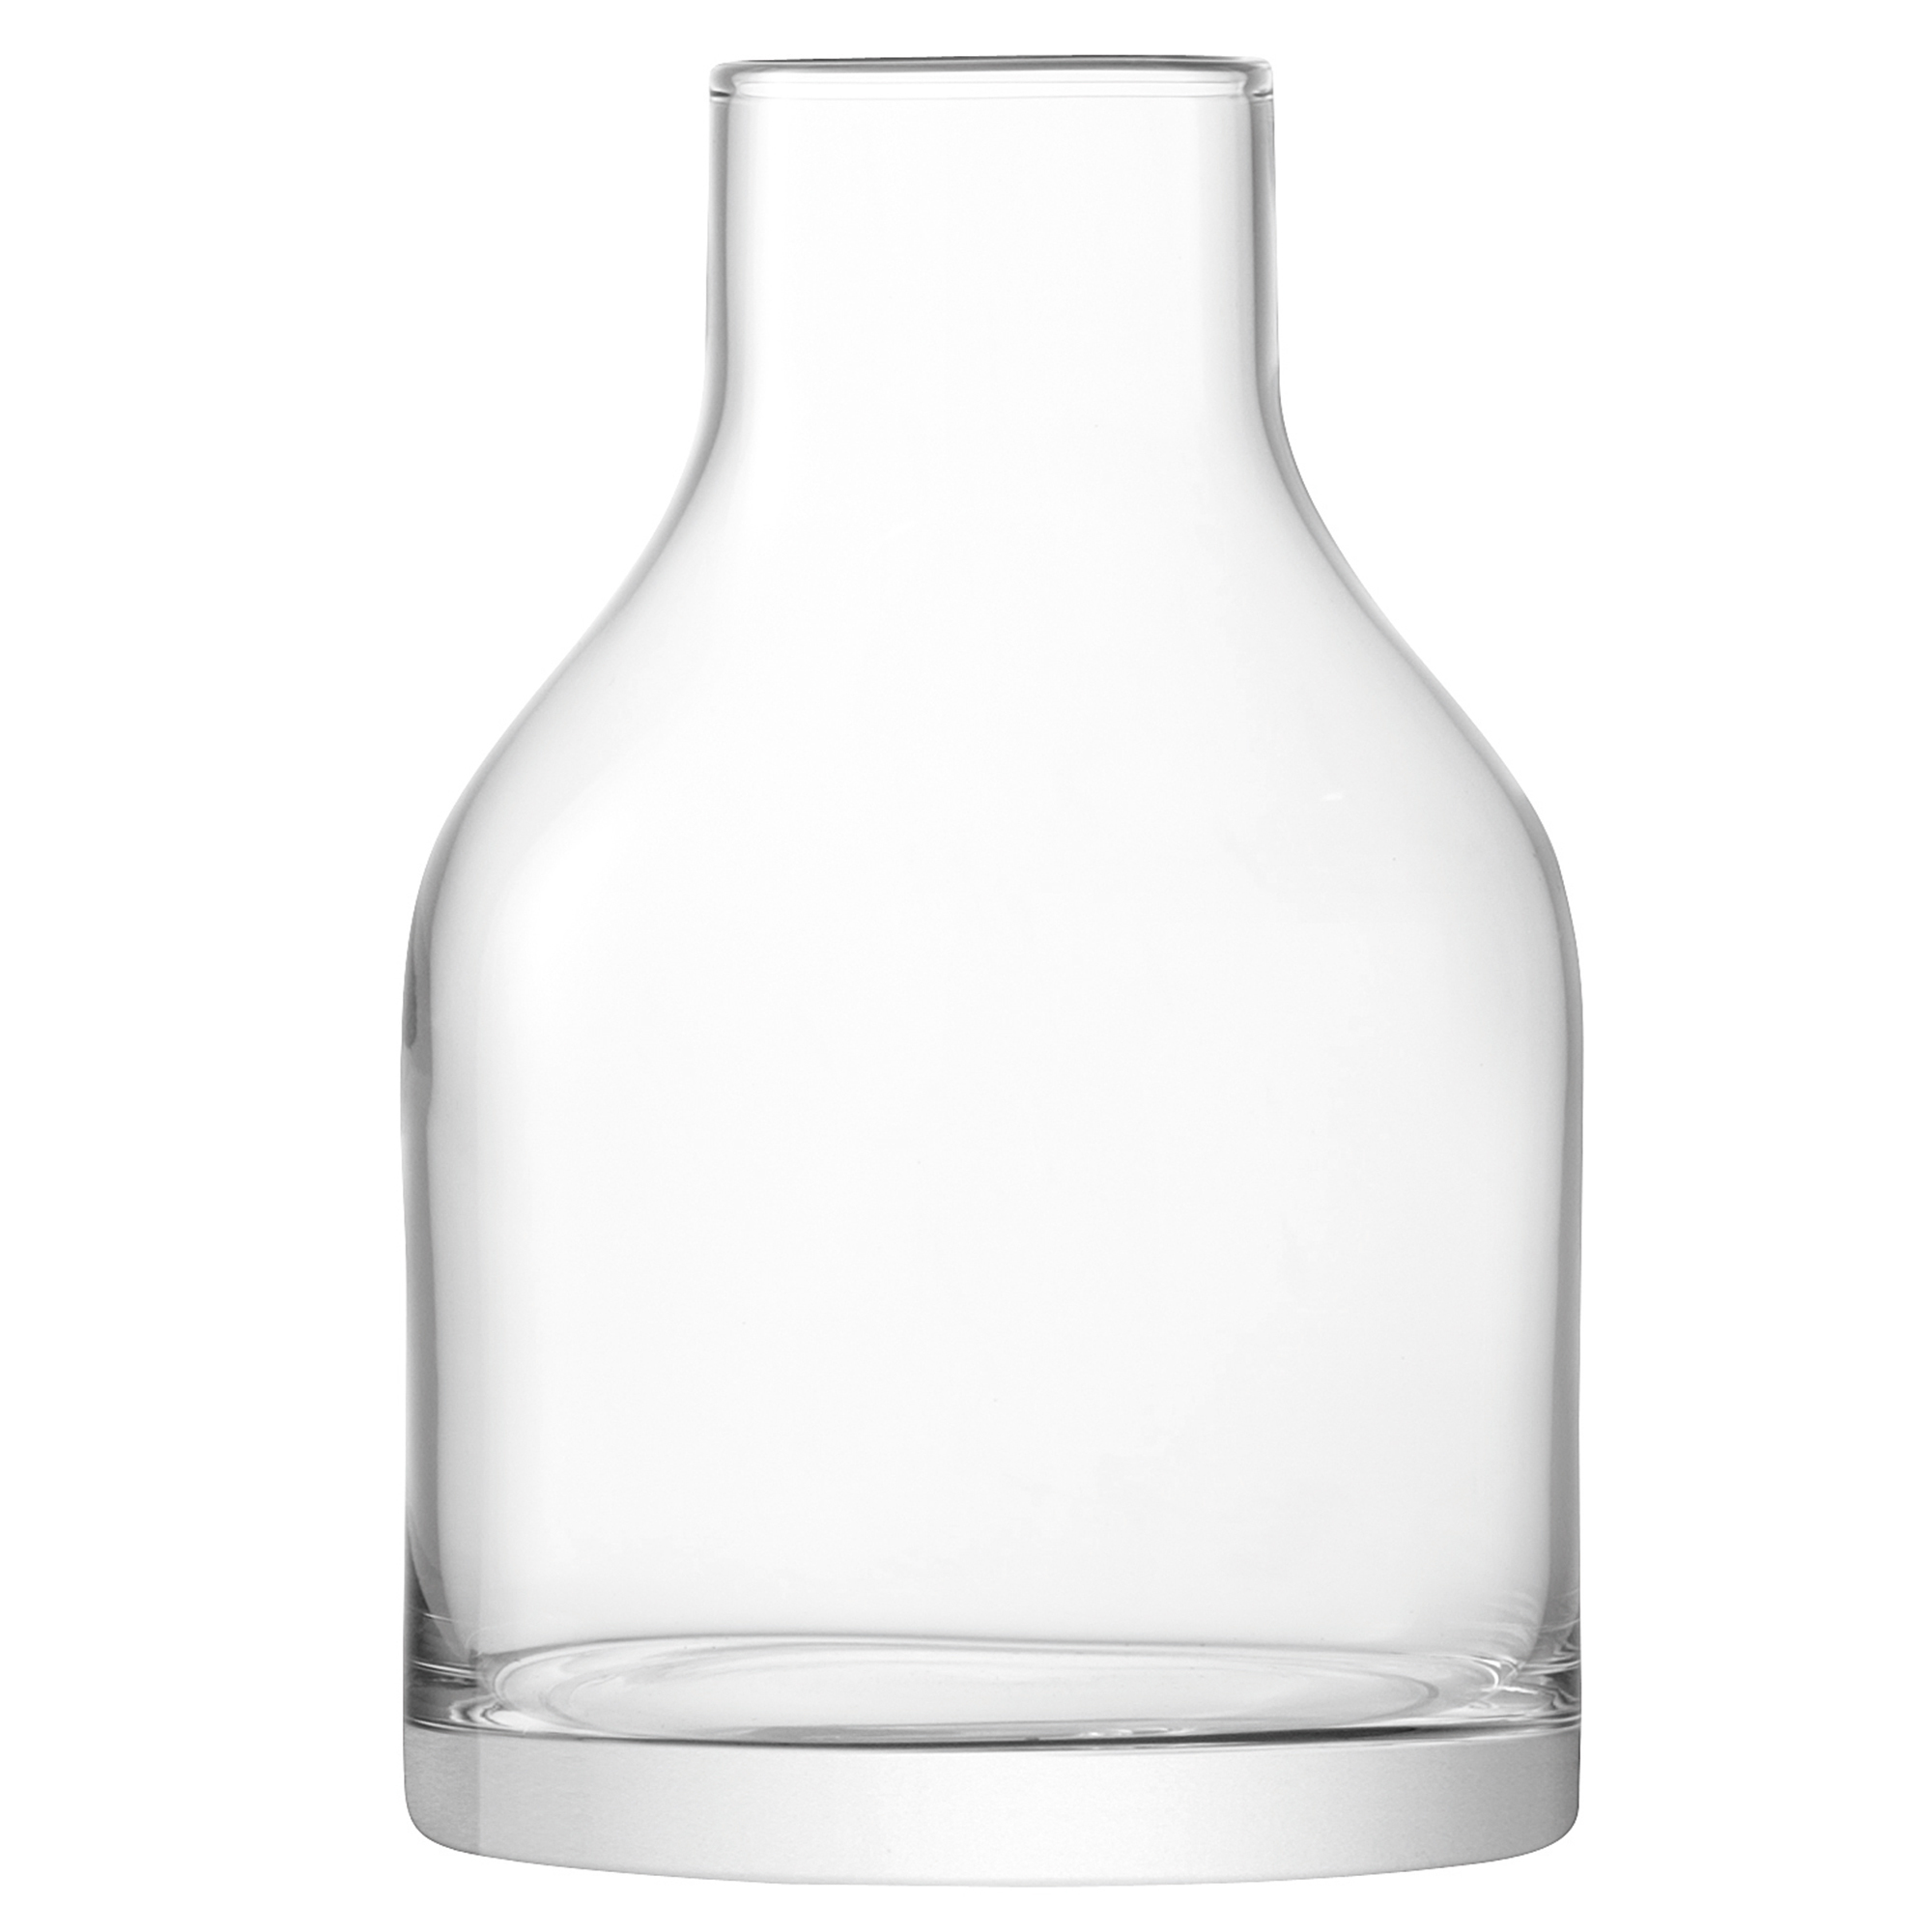 cm the mouth decoration blown ikea glass clear vase bowls is en products by art gb skilled vases craftsperson a tidvatten